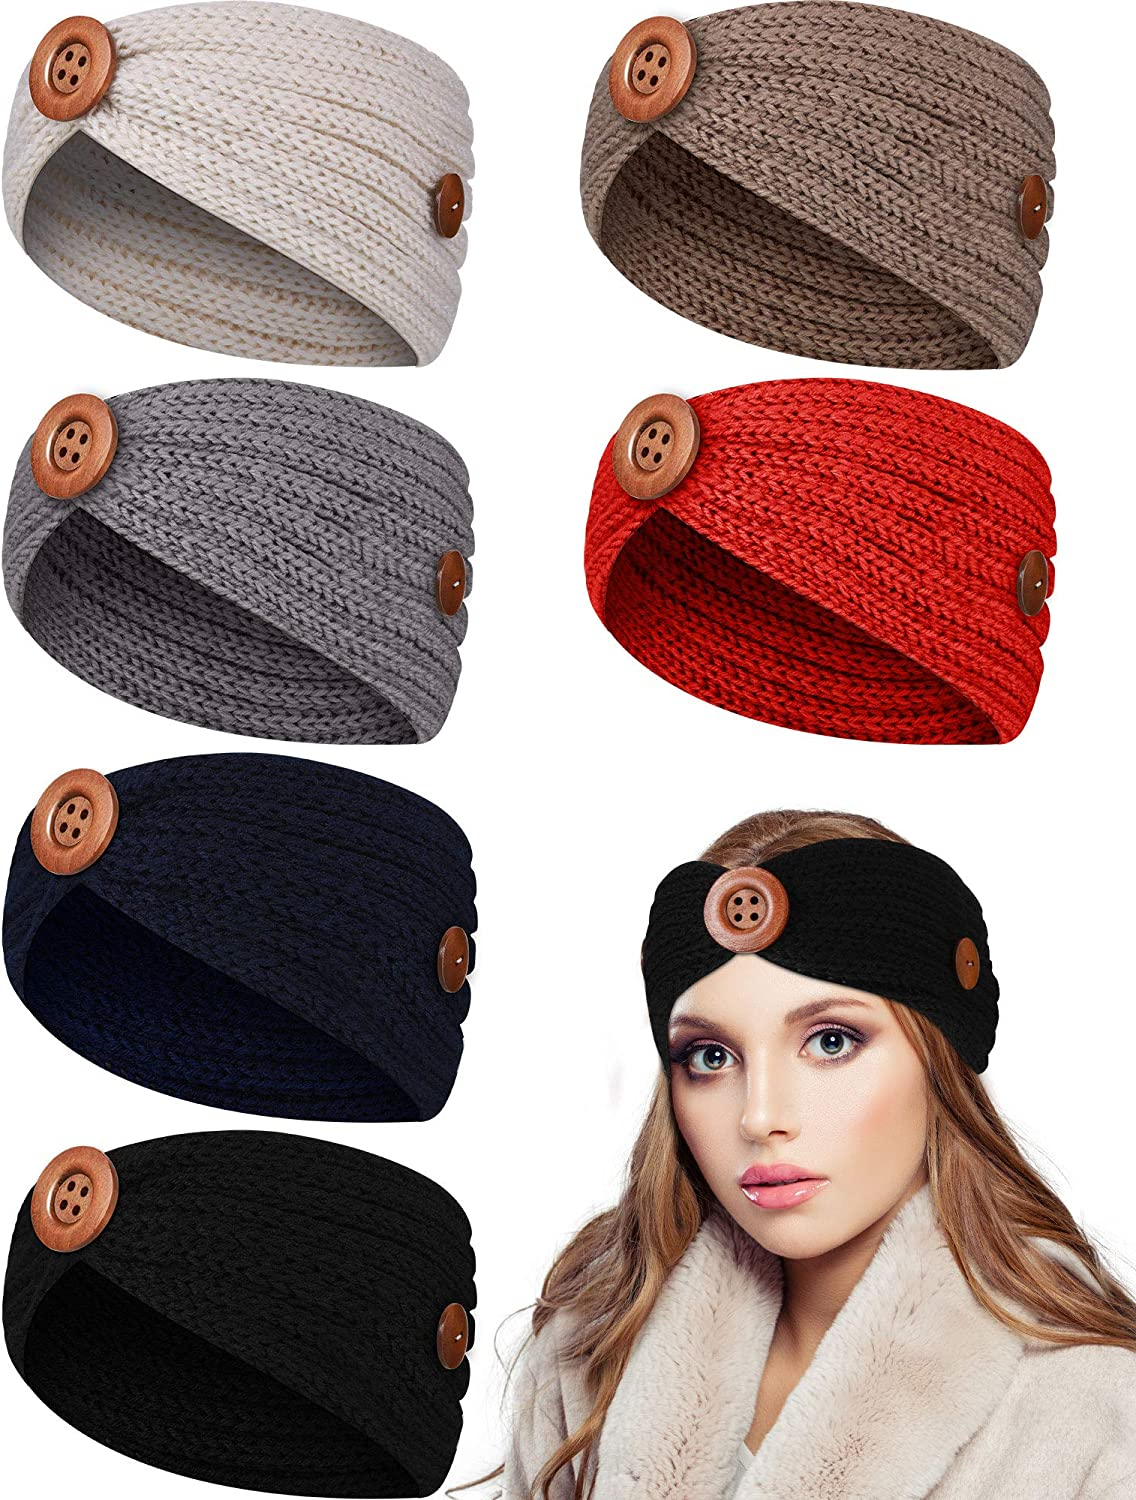 6 Pieces Knit Headbands with Buttons Winter Warm Turban Hair Bands Elastic Ear Warmer Headbands Stretchy Head Wraps for Women Girls